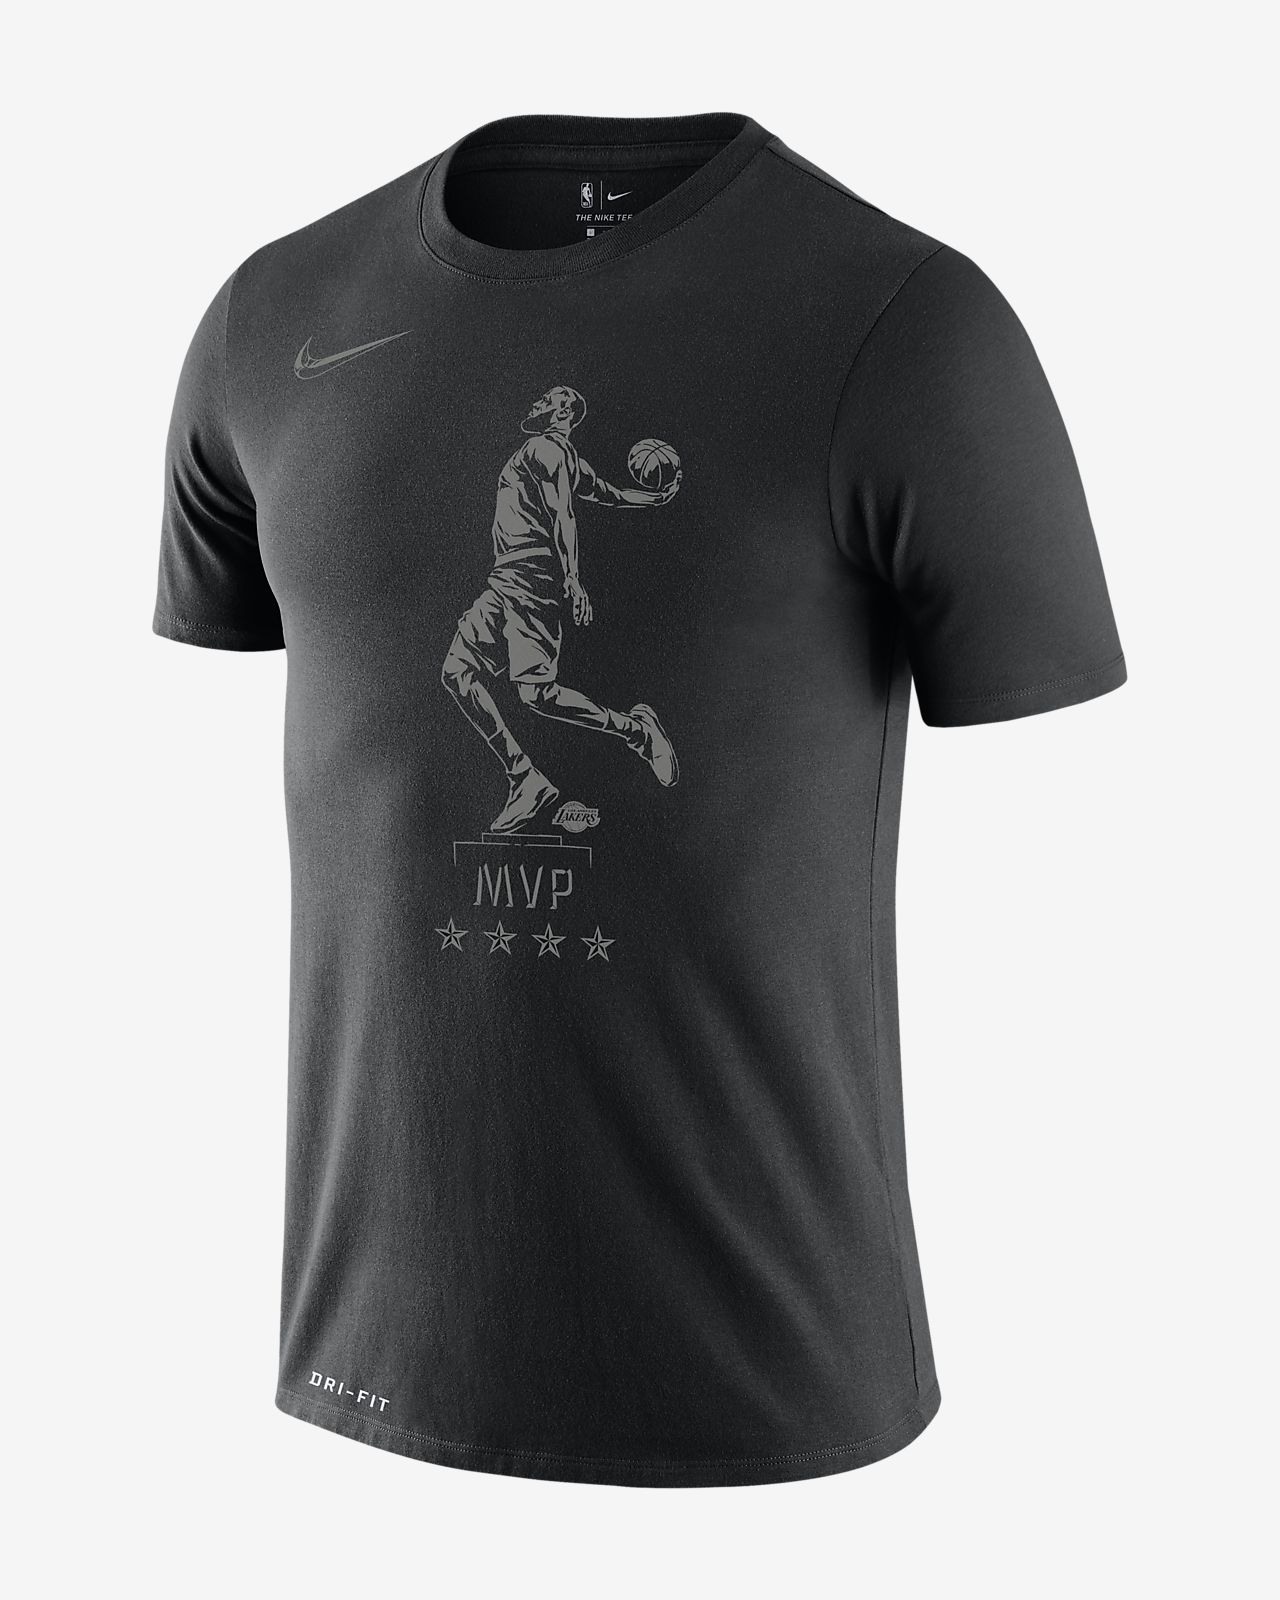 Tee-shirt NBA LeBron James Nike Dri-FIT « MVP » pour Homme